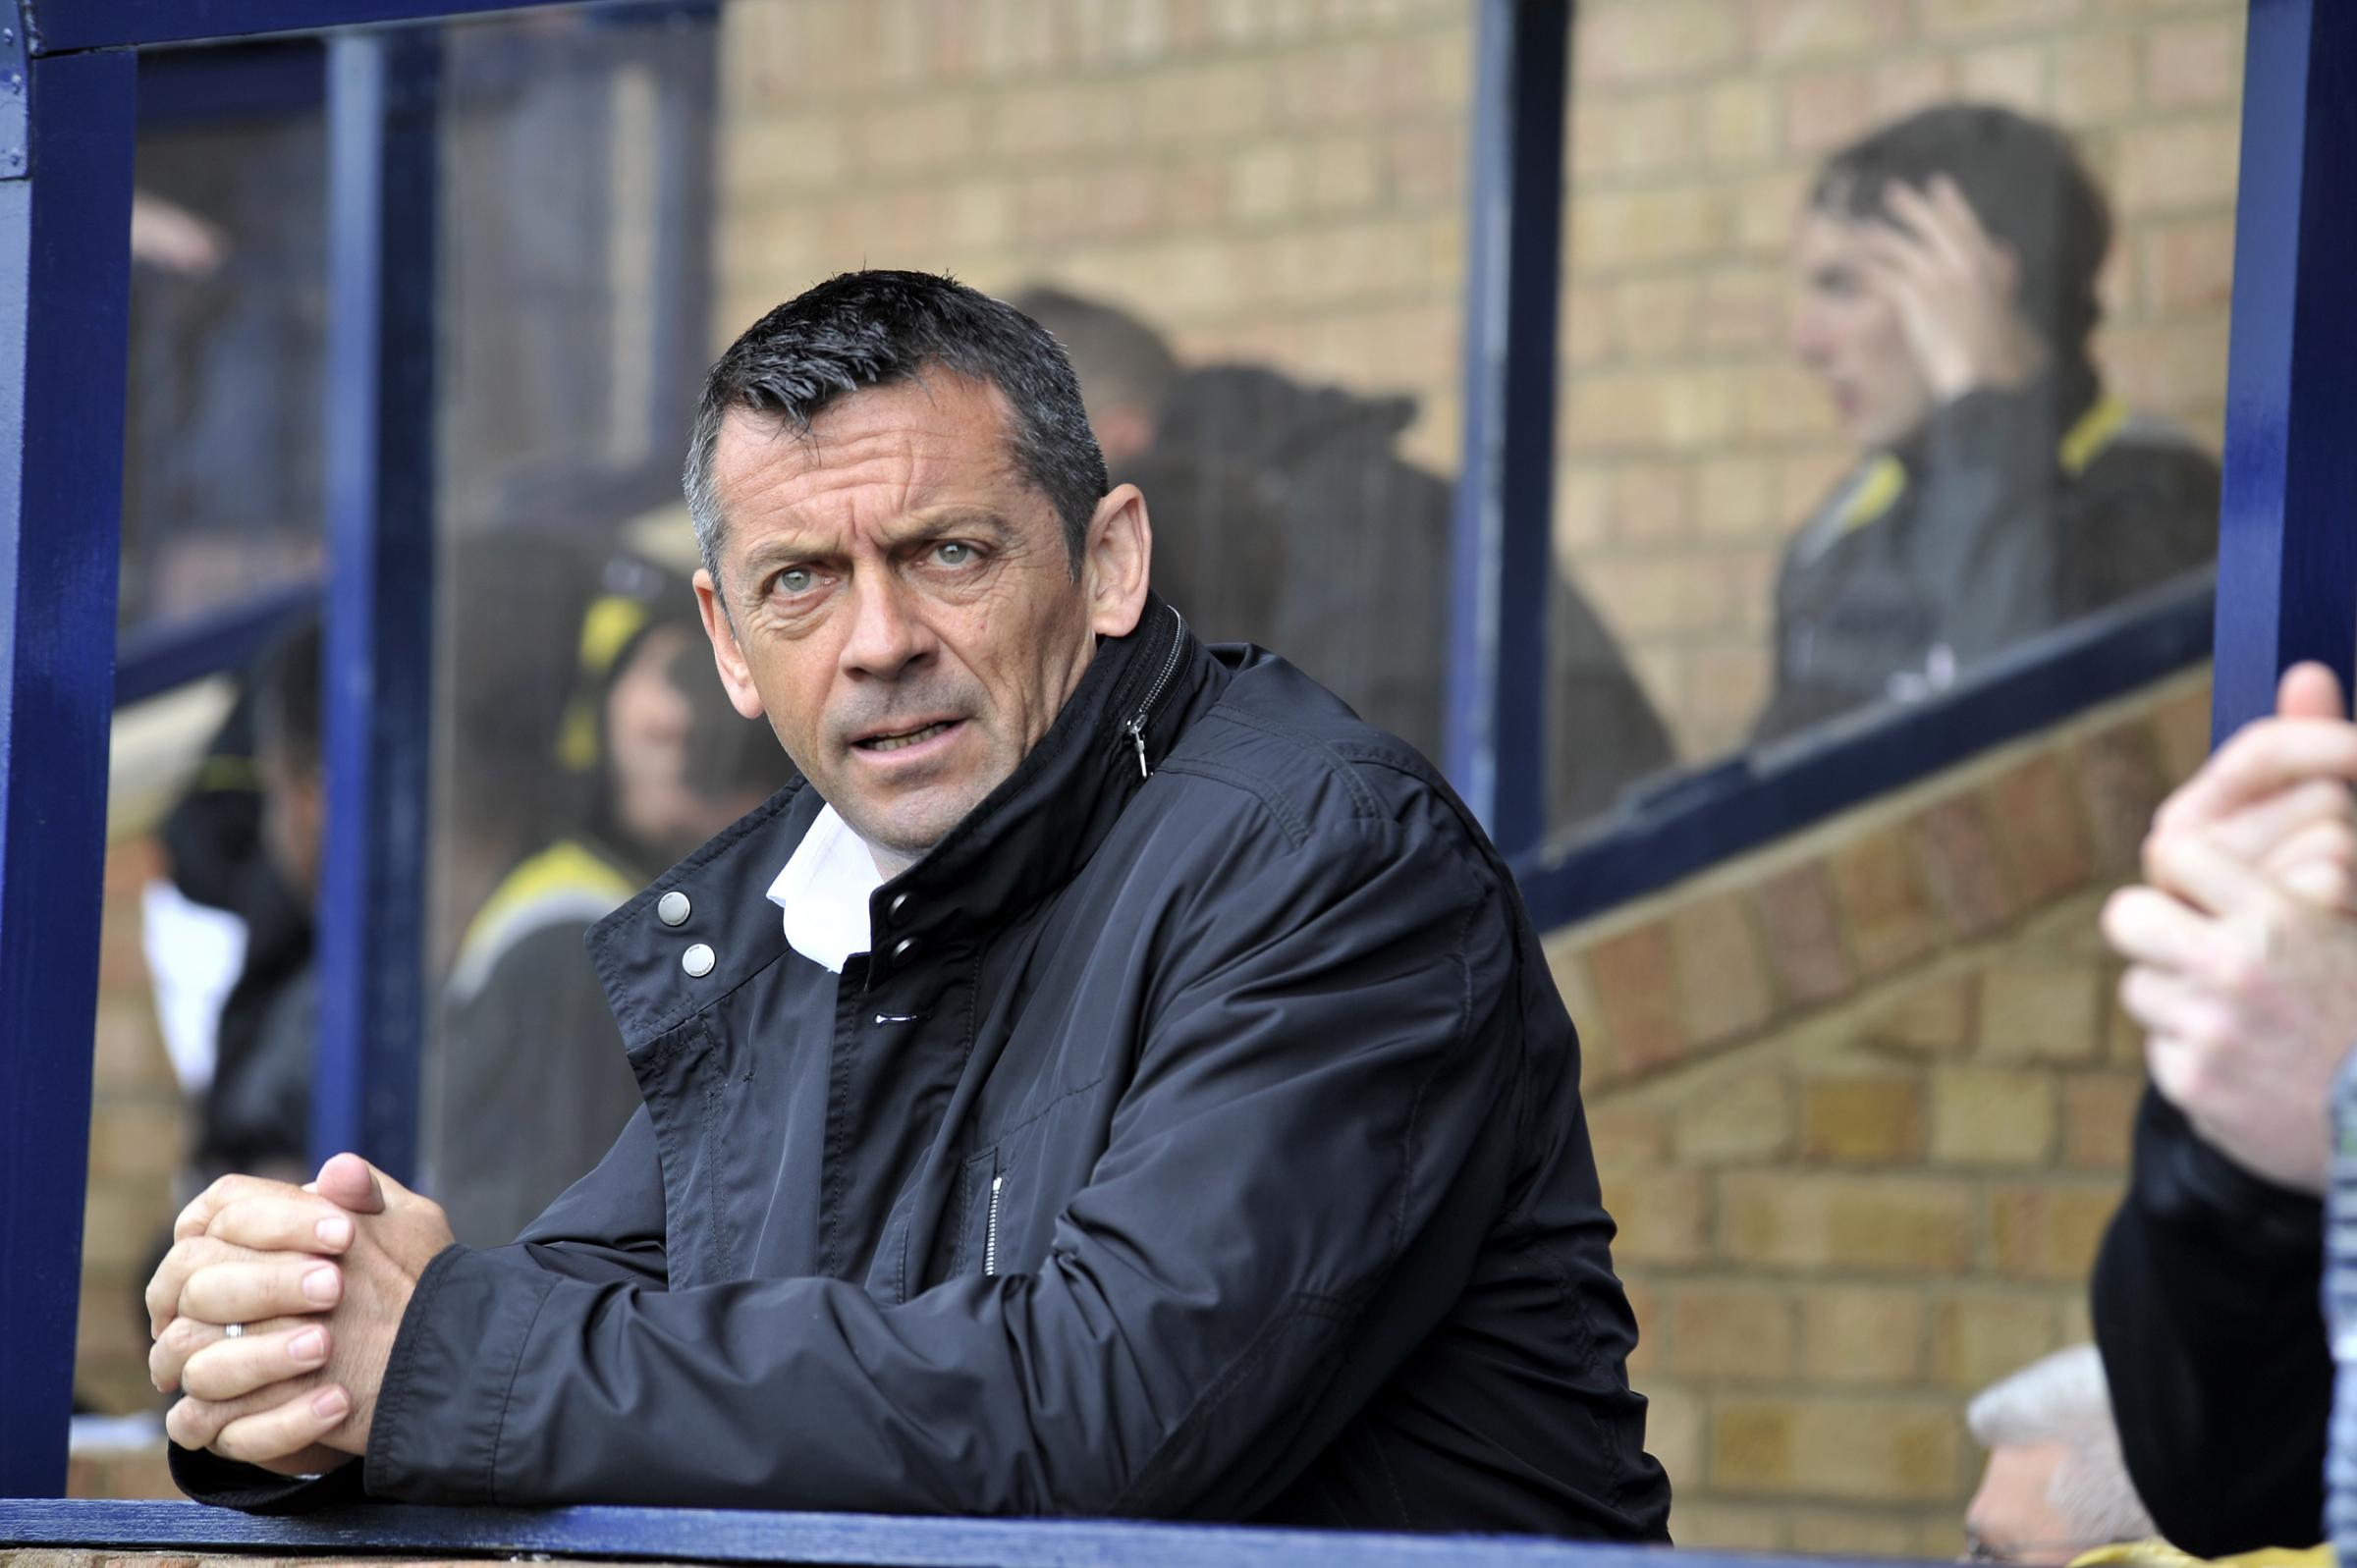 Southend United manager Phil Brown: I don't want this to be the same as last season